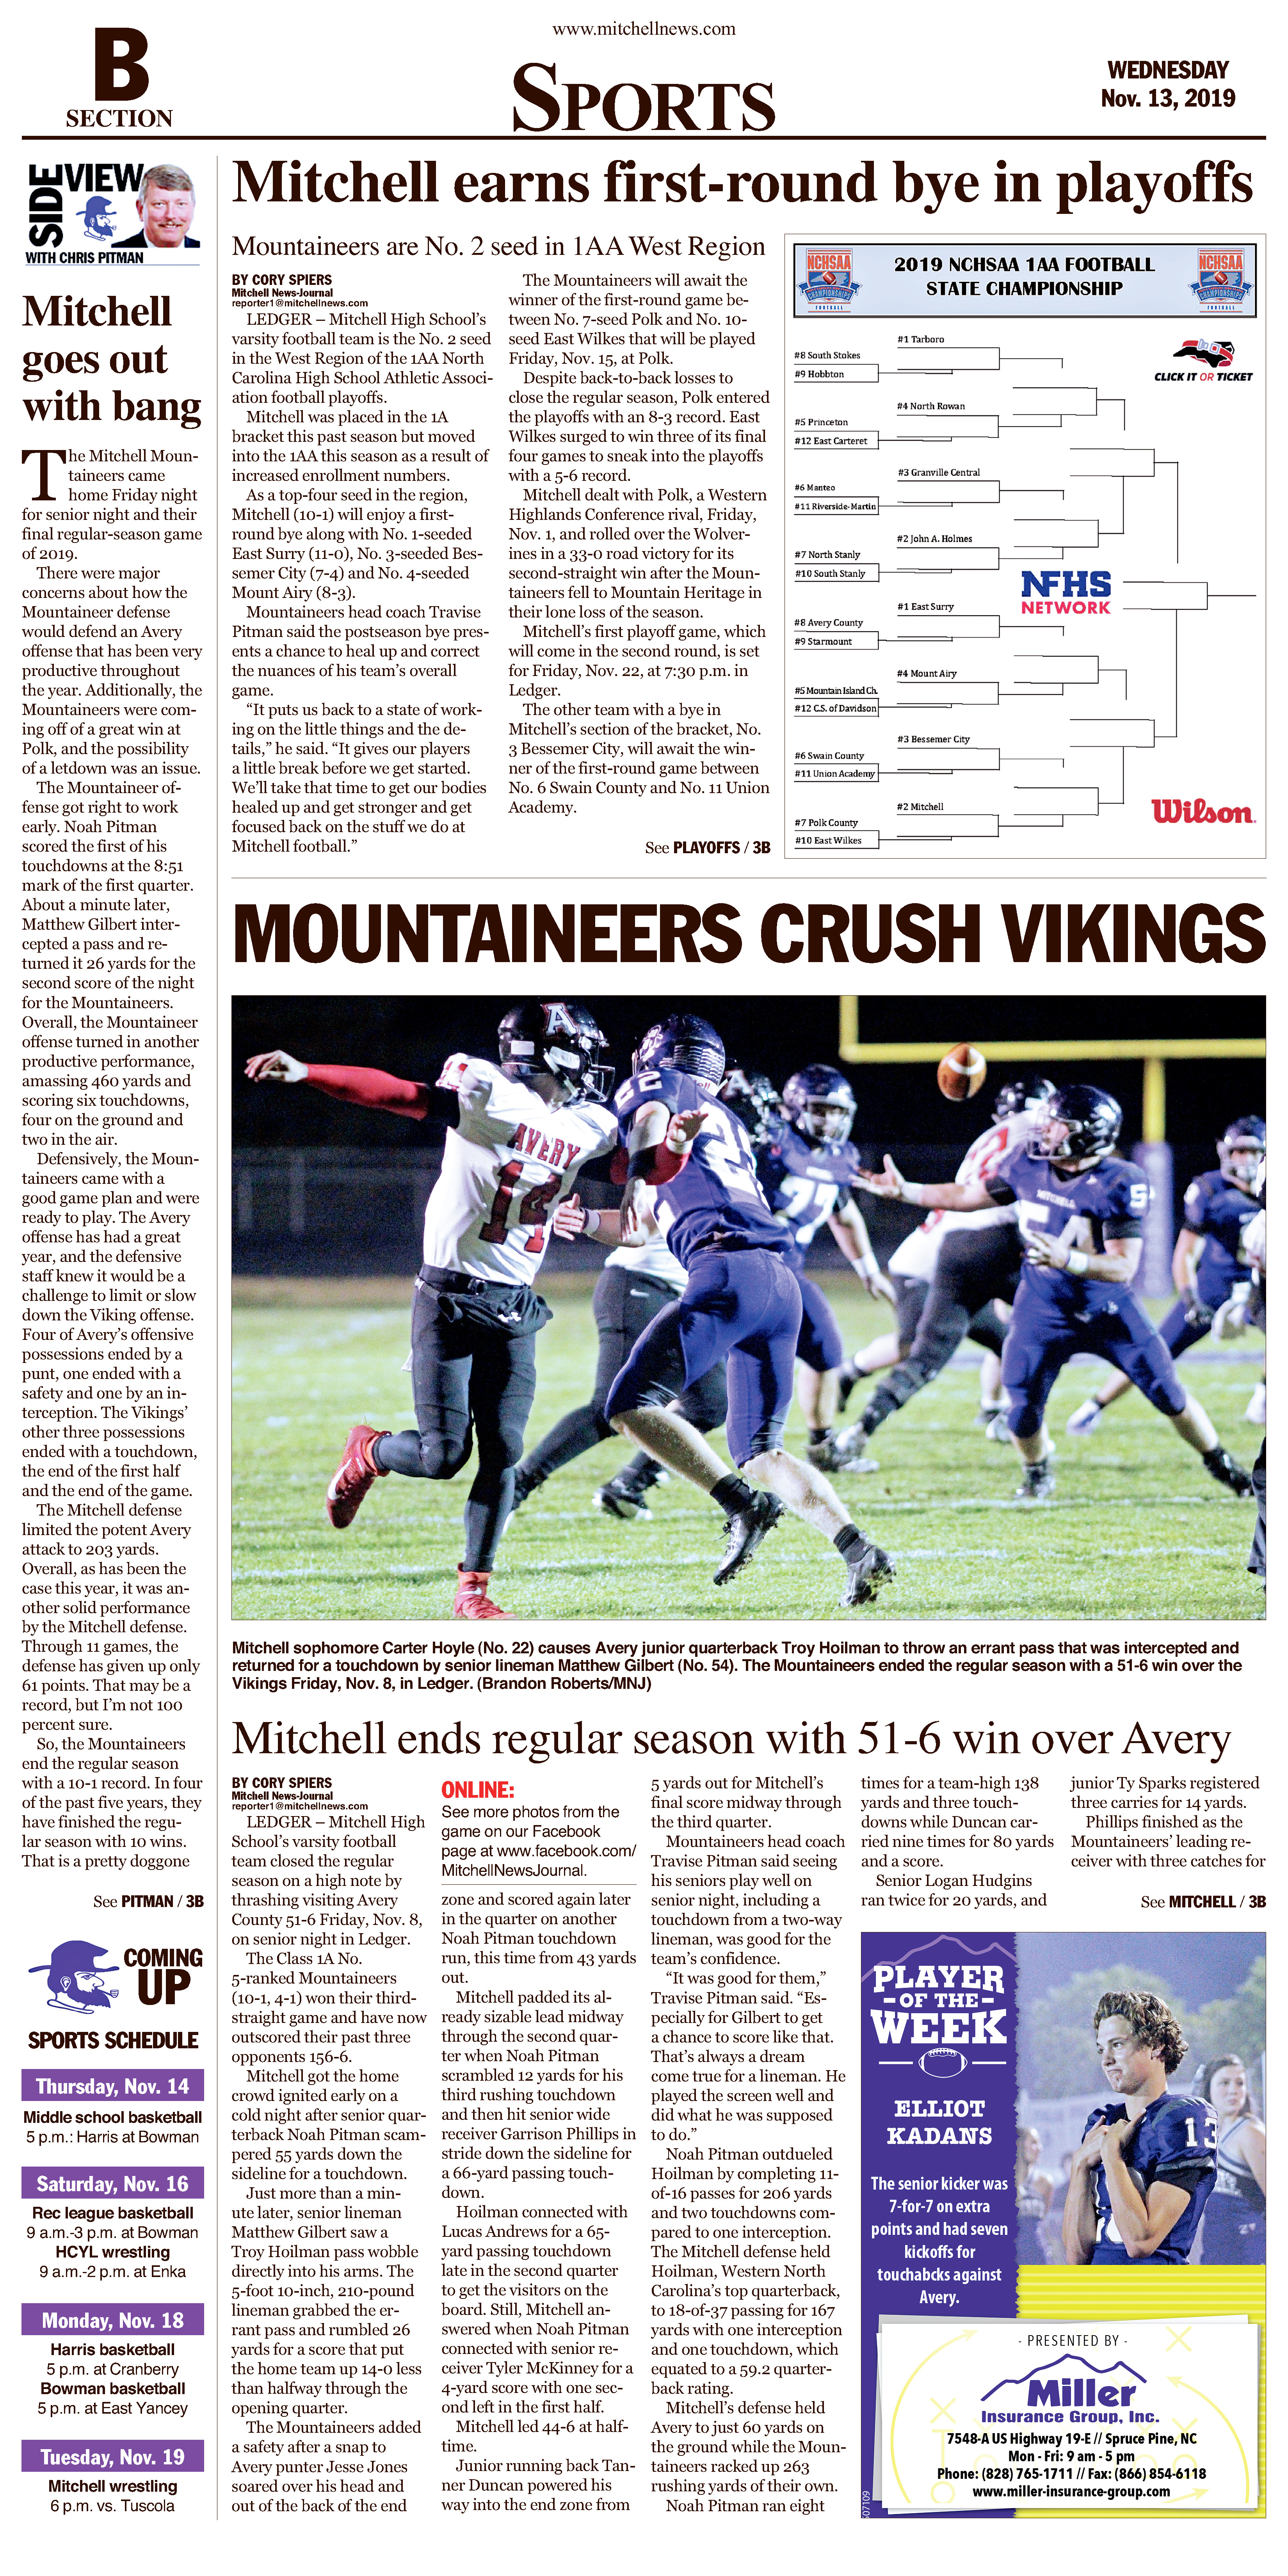 Sports page for Wednesday, Nov. 13.